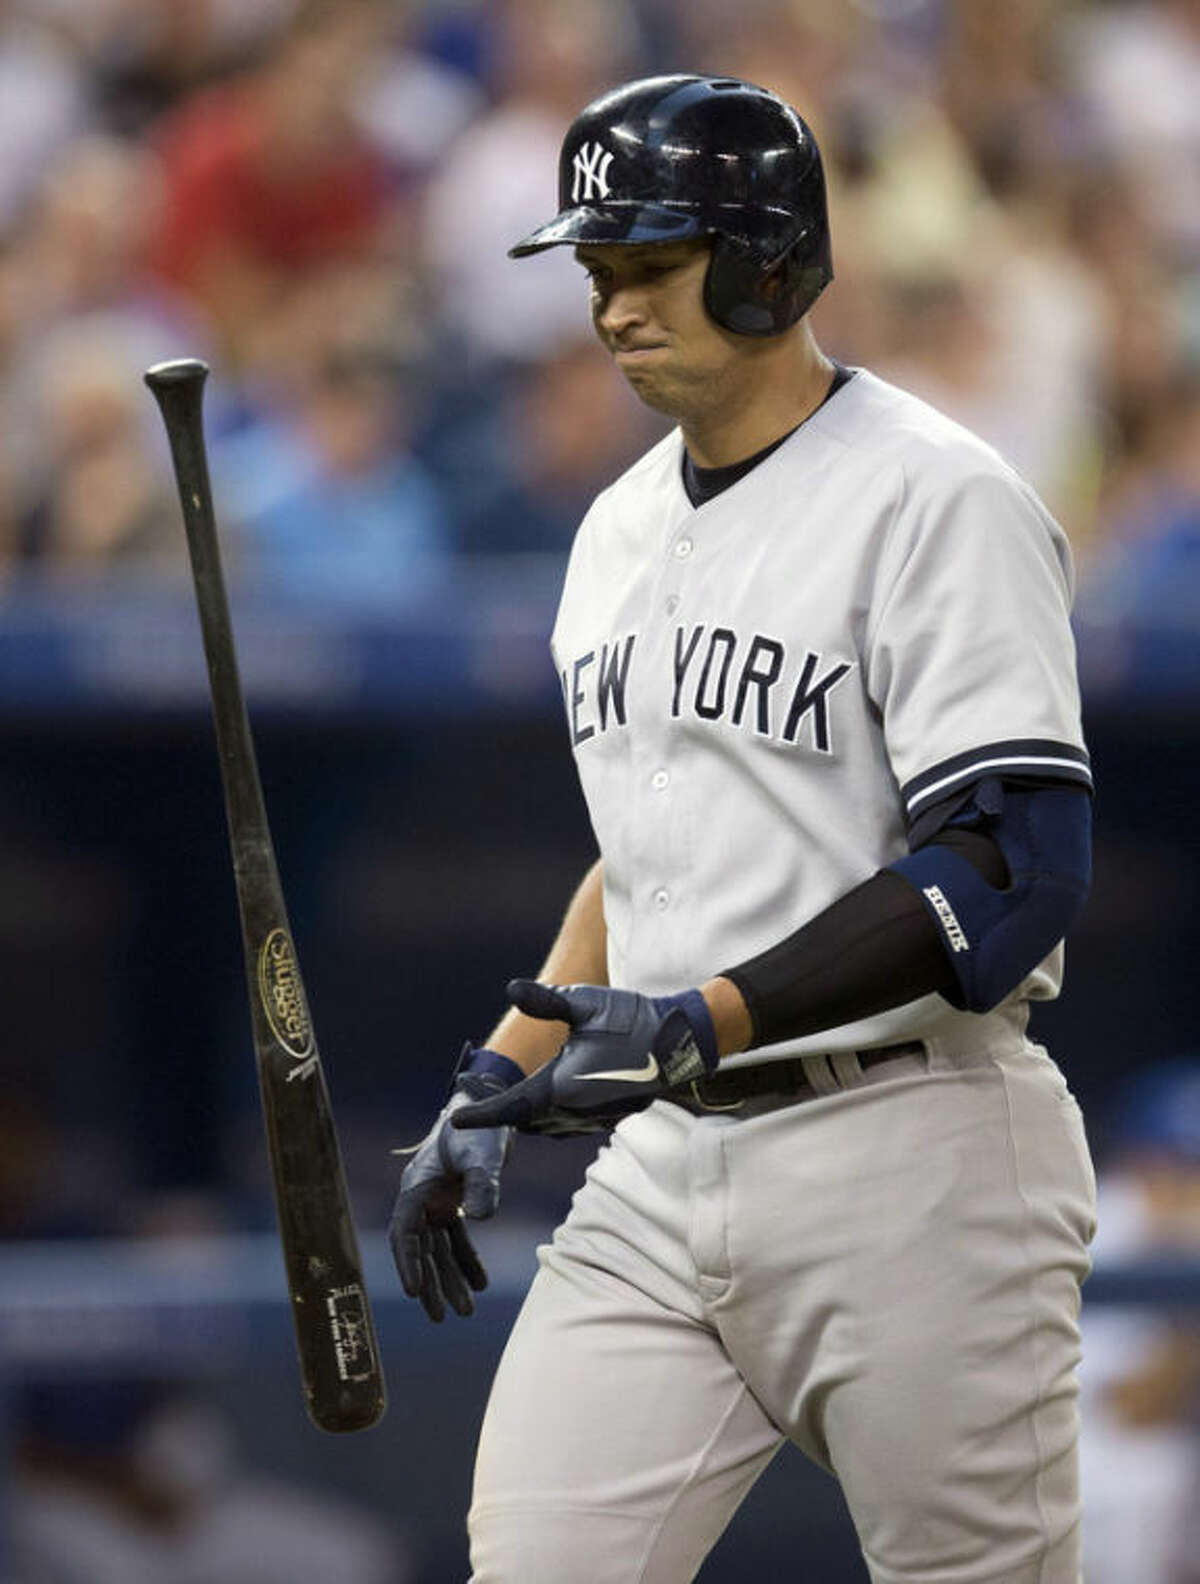 New York Yankees' Alex Rodriguez reacts after striking out against the Toronto Blue Jays during second-inning AL baseball game action in Toronto, Wednesday, Aug. 28, 2013. (AP Photo/The Canadian Press, Frank Gunn)